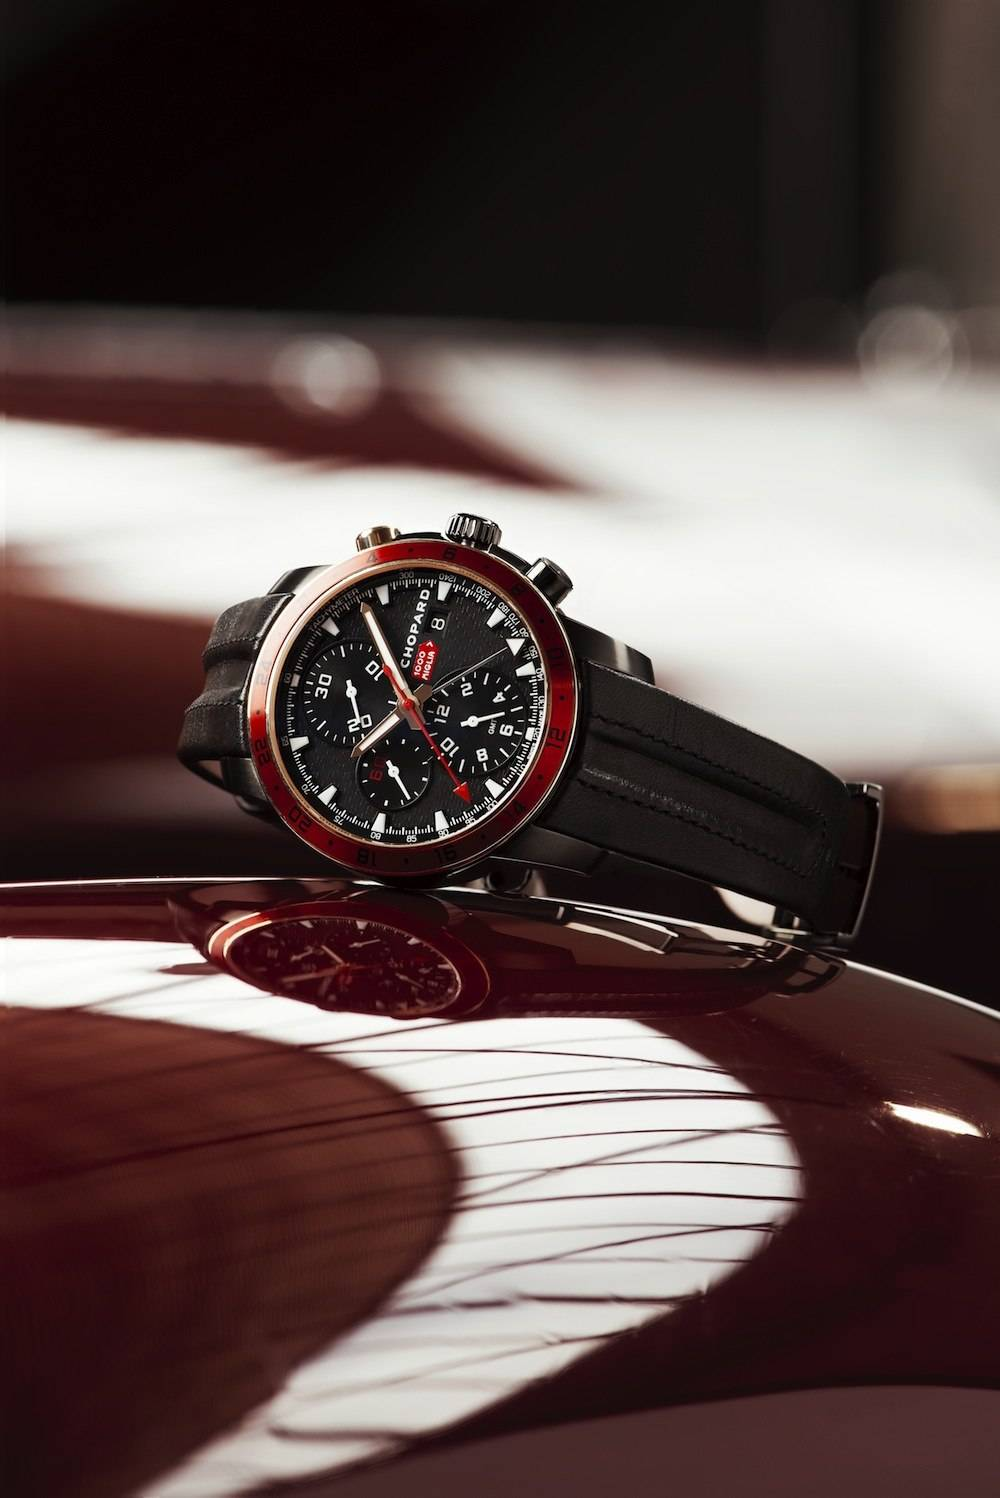 CHOPARD MILLE MIGLIA Zagato Chronograph : Watch of the Week